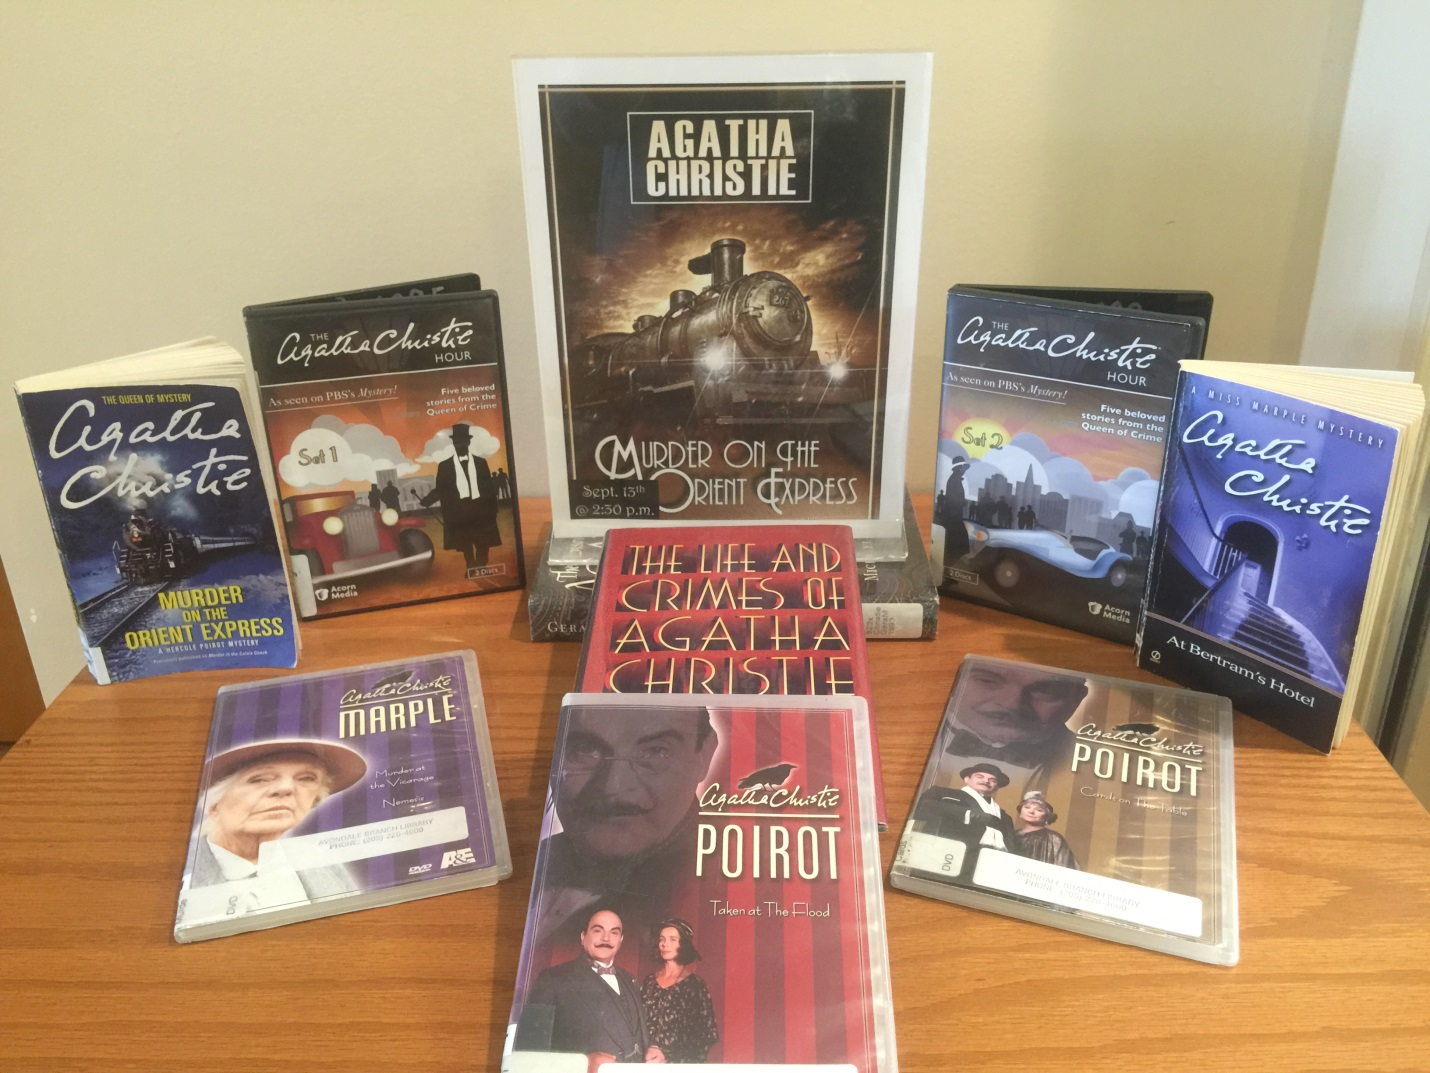 display of Agatha Christie books